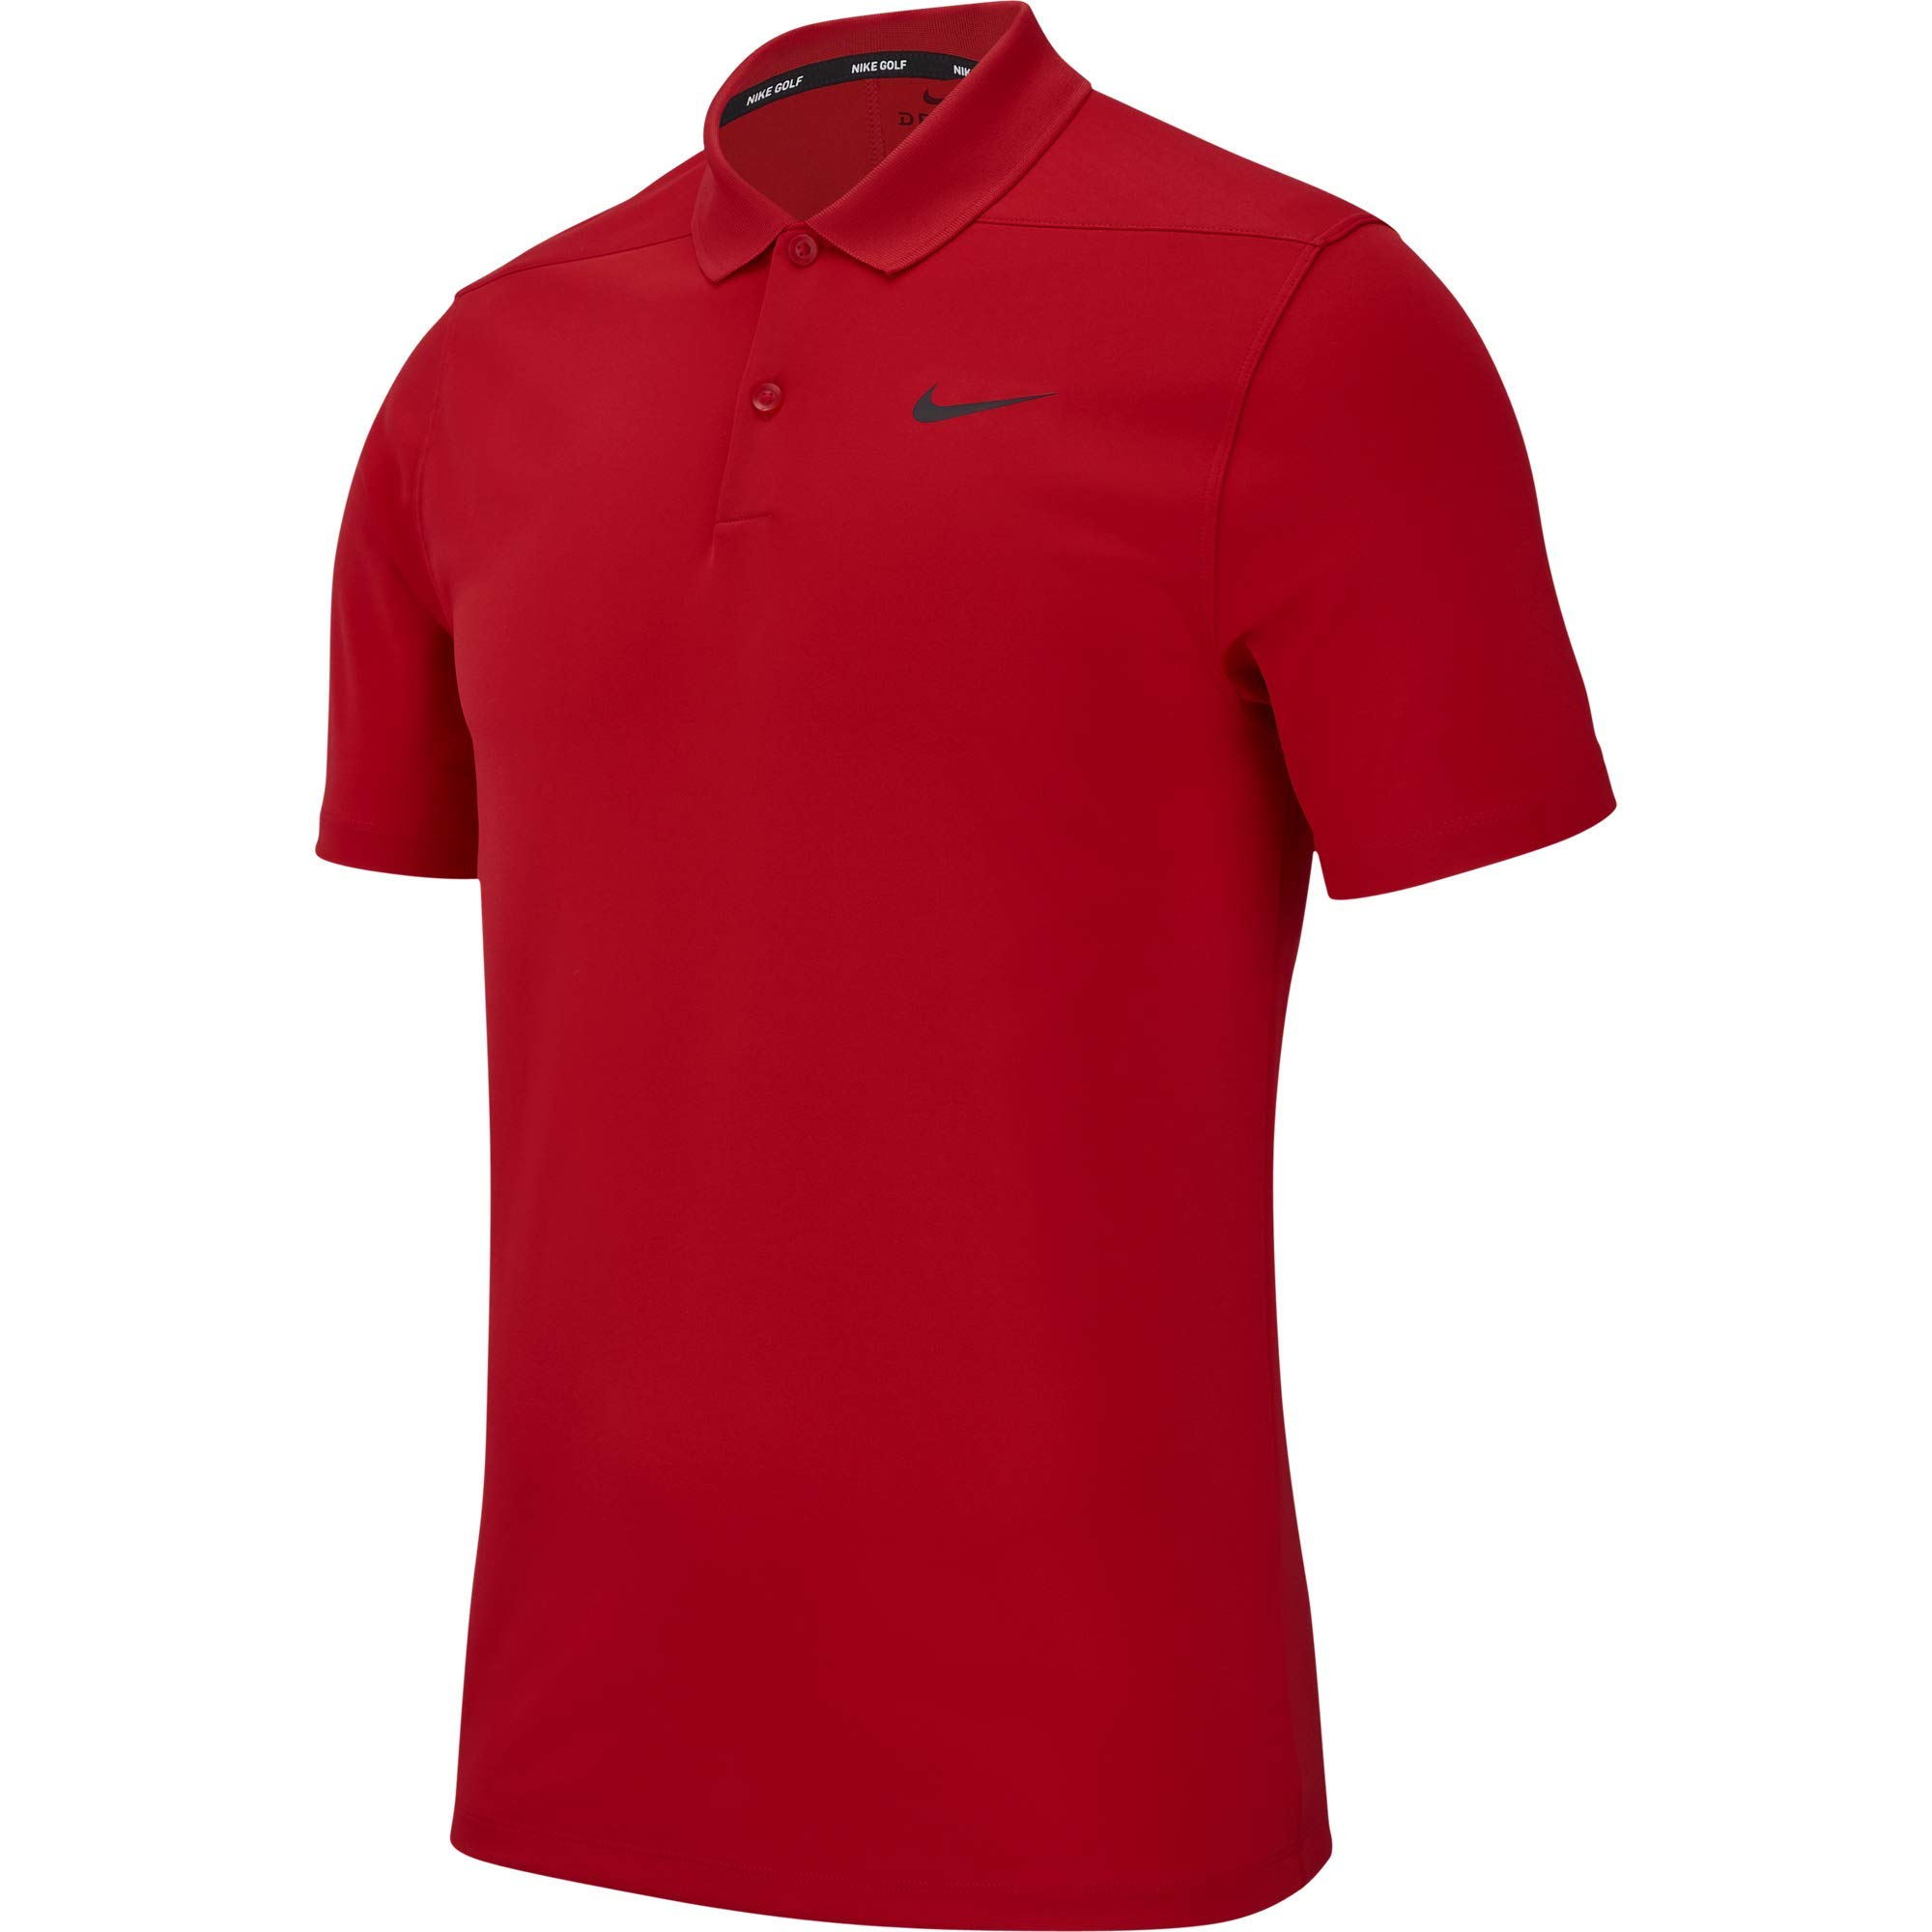 Nike Men's Dry Victory Polo Solid Left Chest, University Red/Black, Medium by Nike